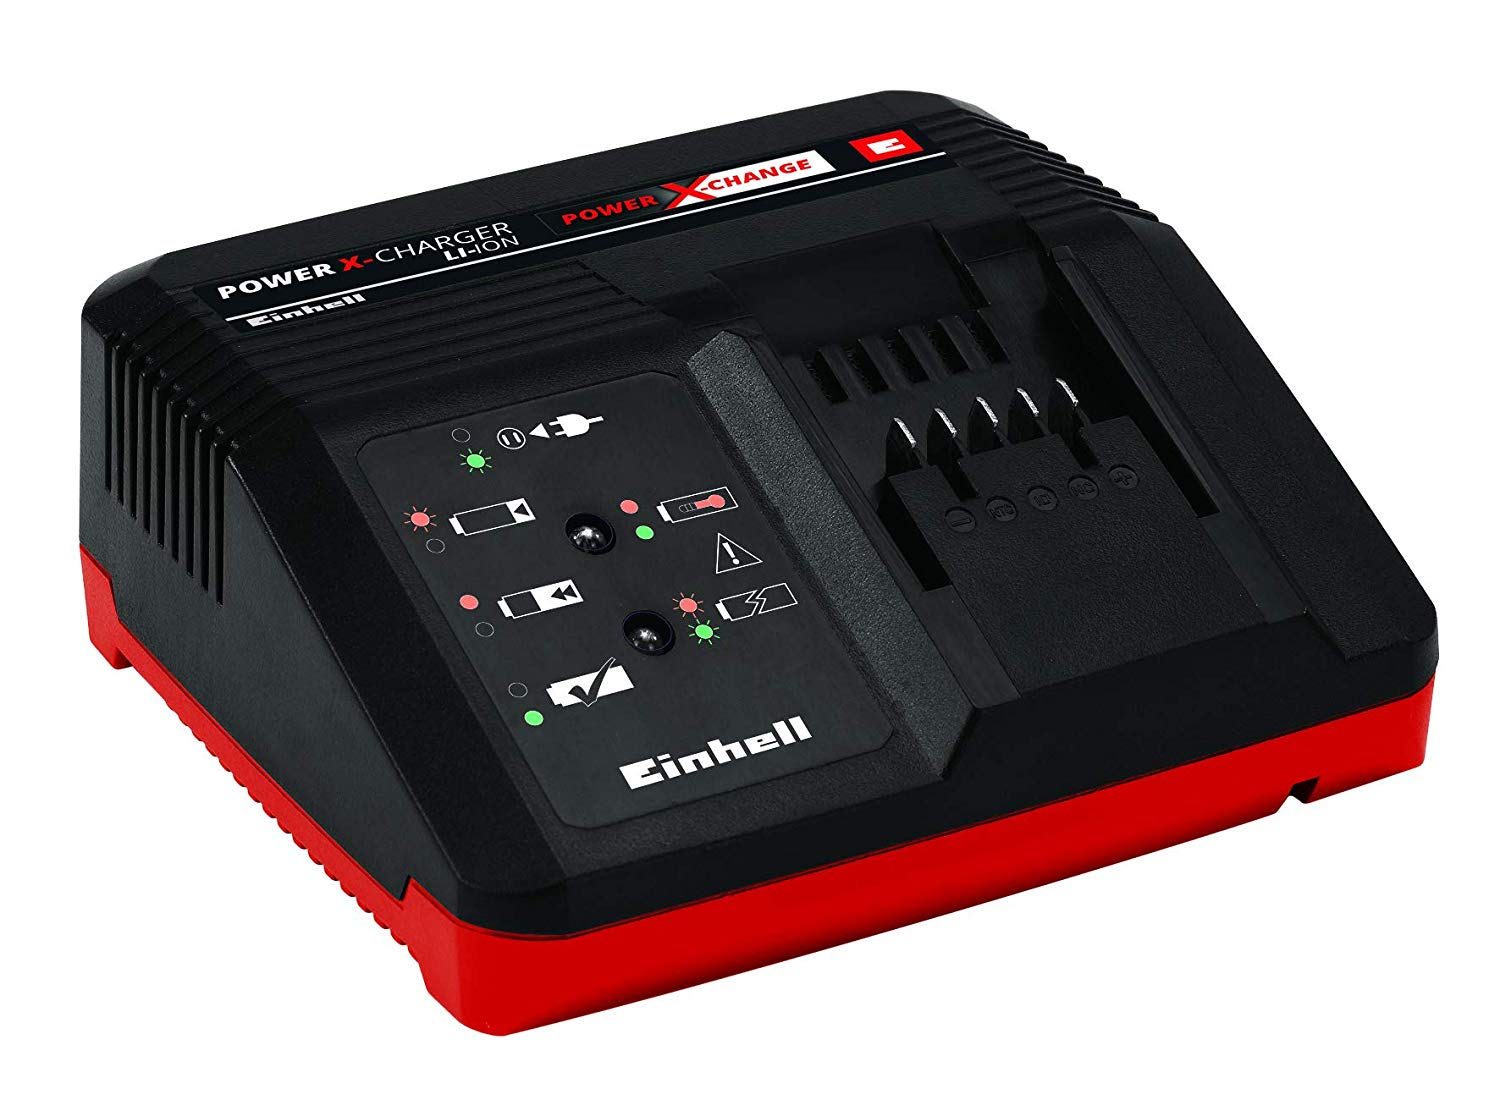 Caricabatteria rapido carica batteria per batterie Power X-Change Einhell